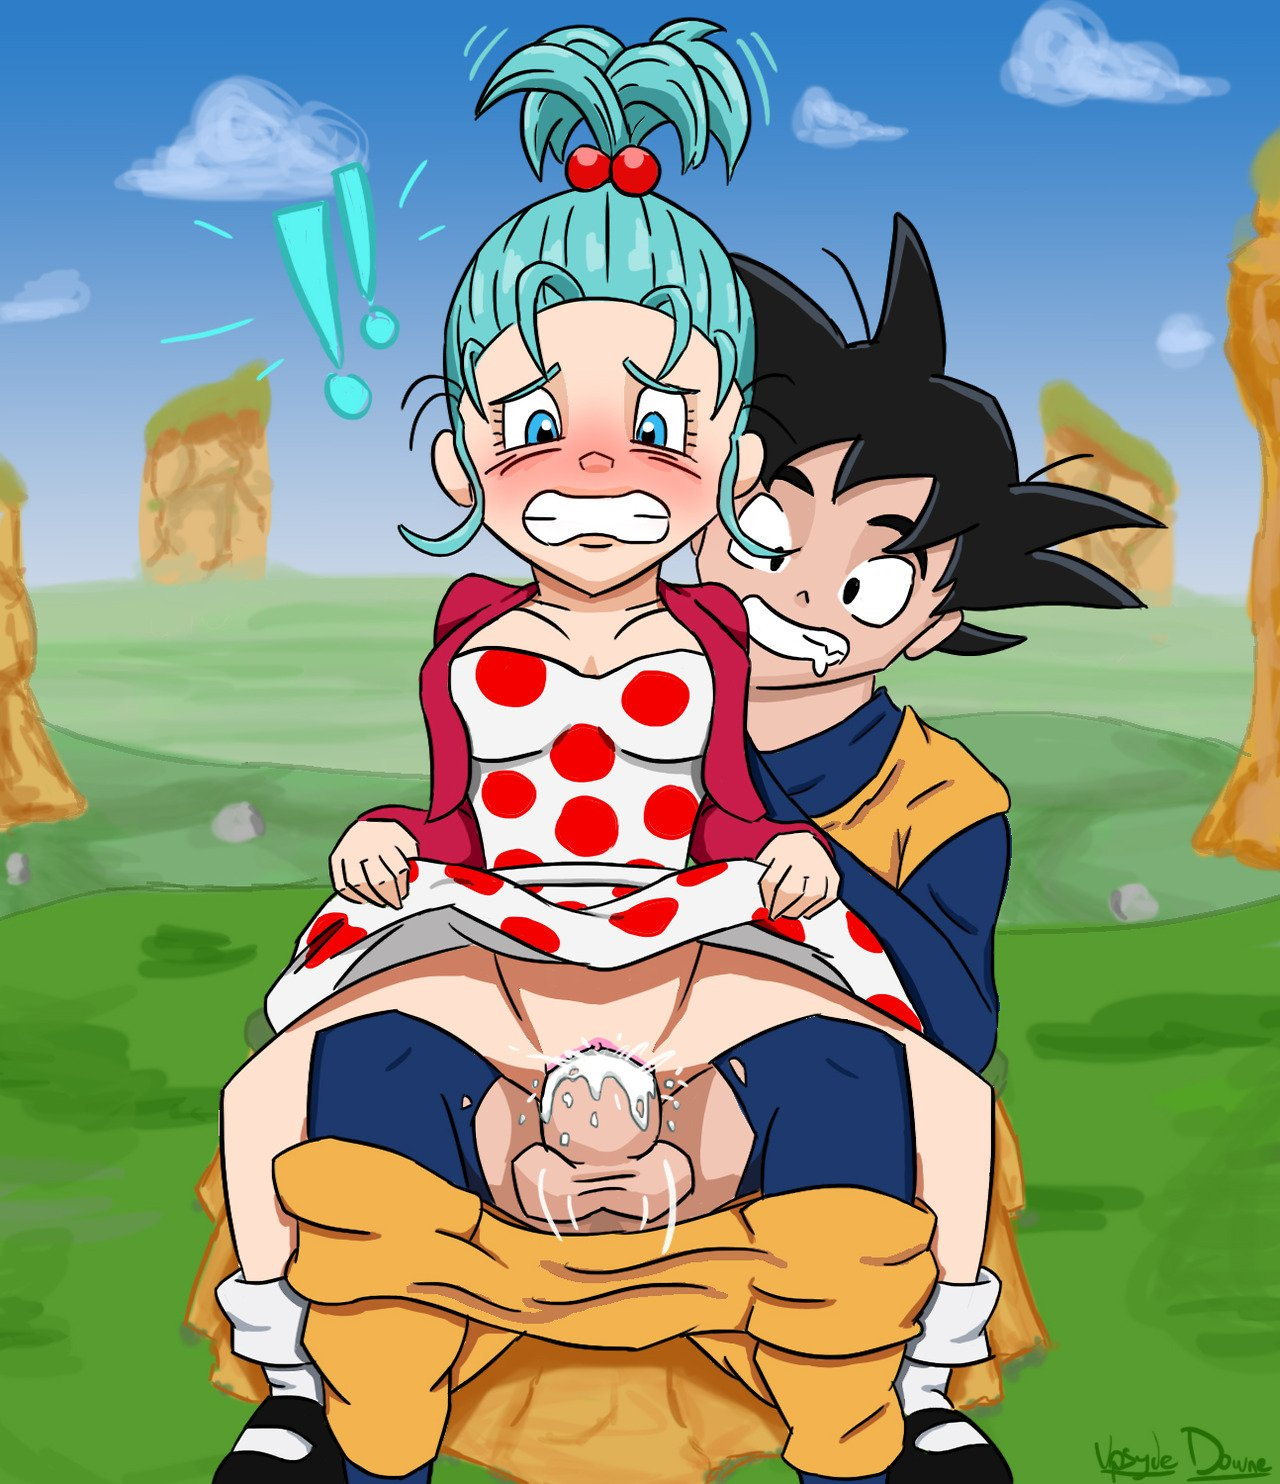 bra-naked-dbz-sex-related-links-teens-and